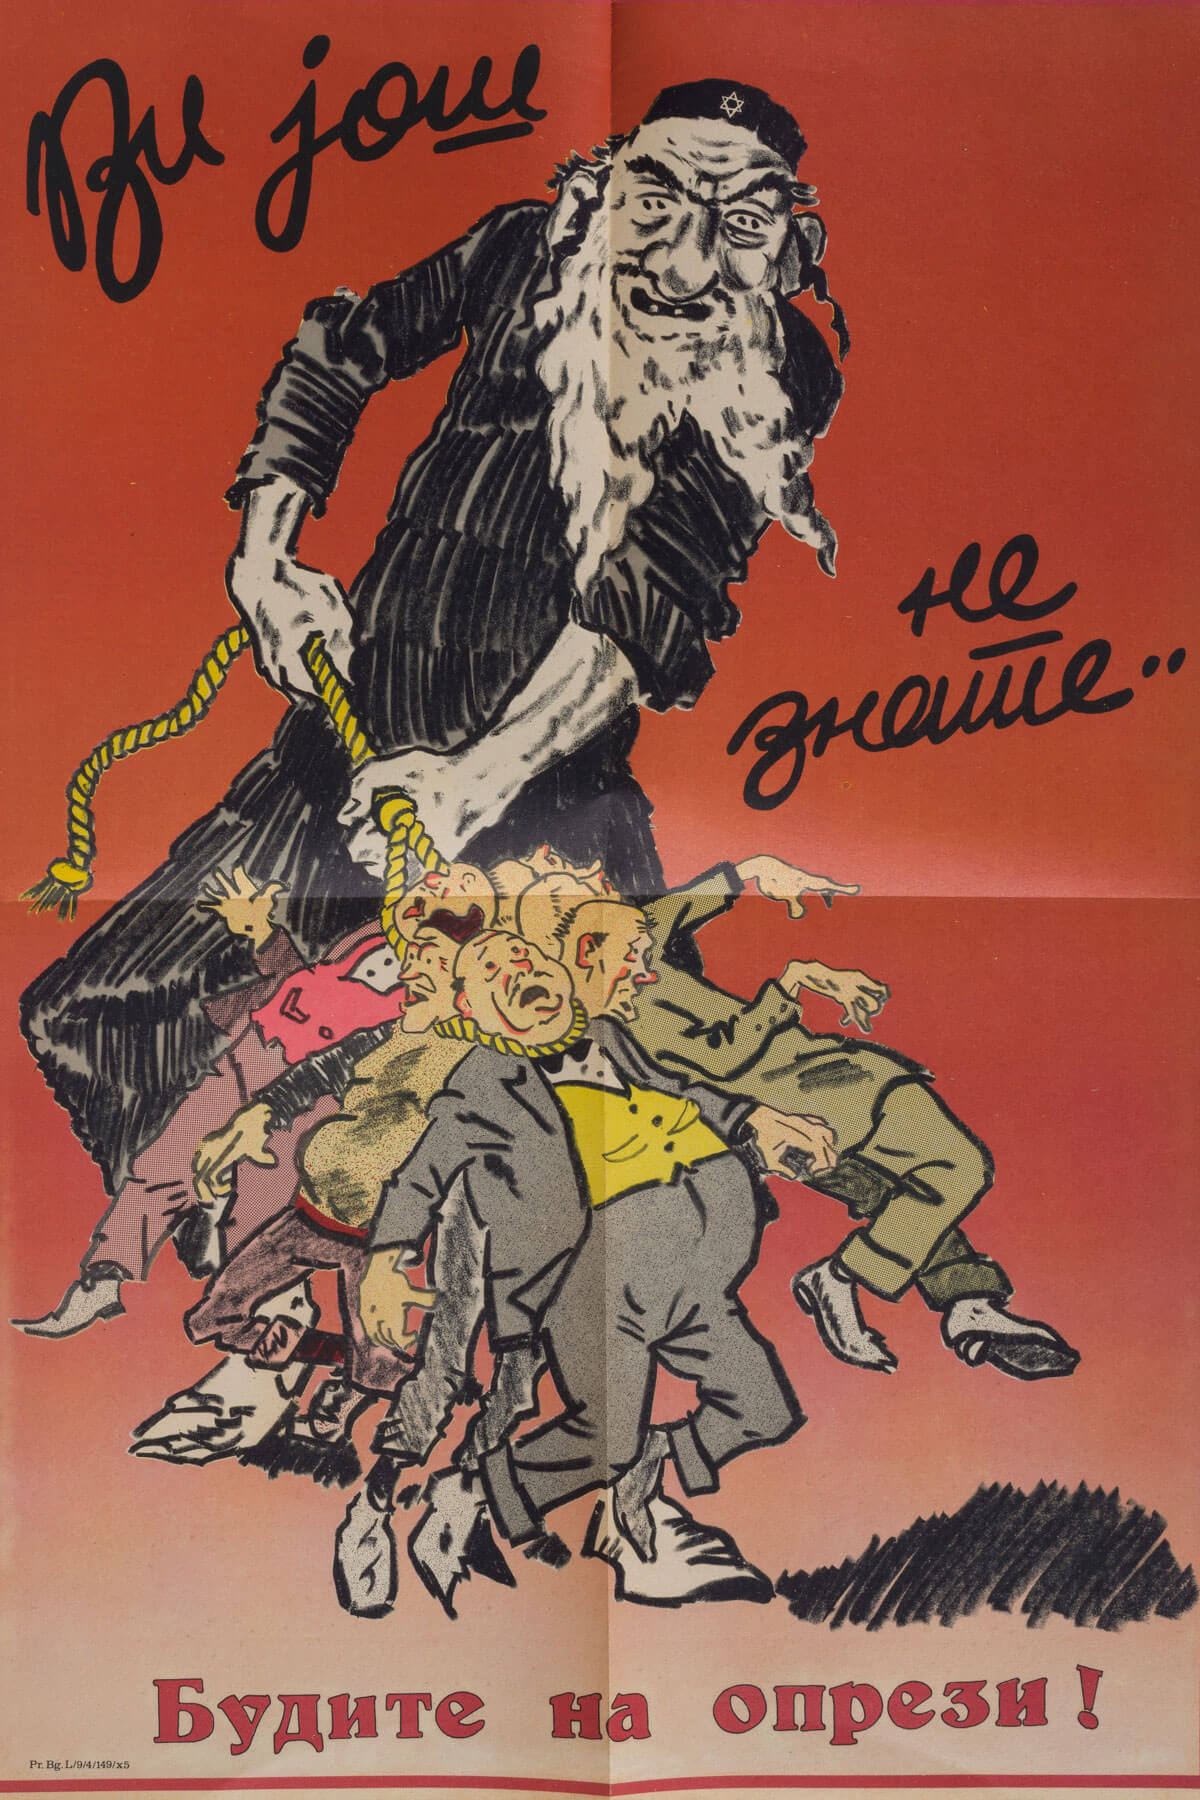 176. An Anti-Semitic Poster Published by the Yugoslav Nazi Party in Belgrade, Serbia